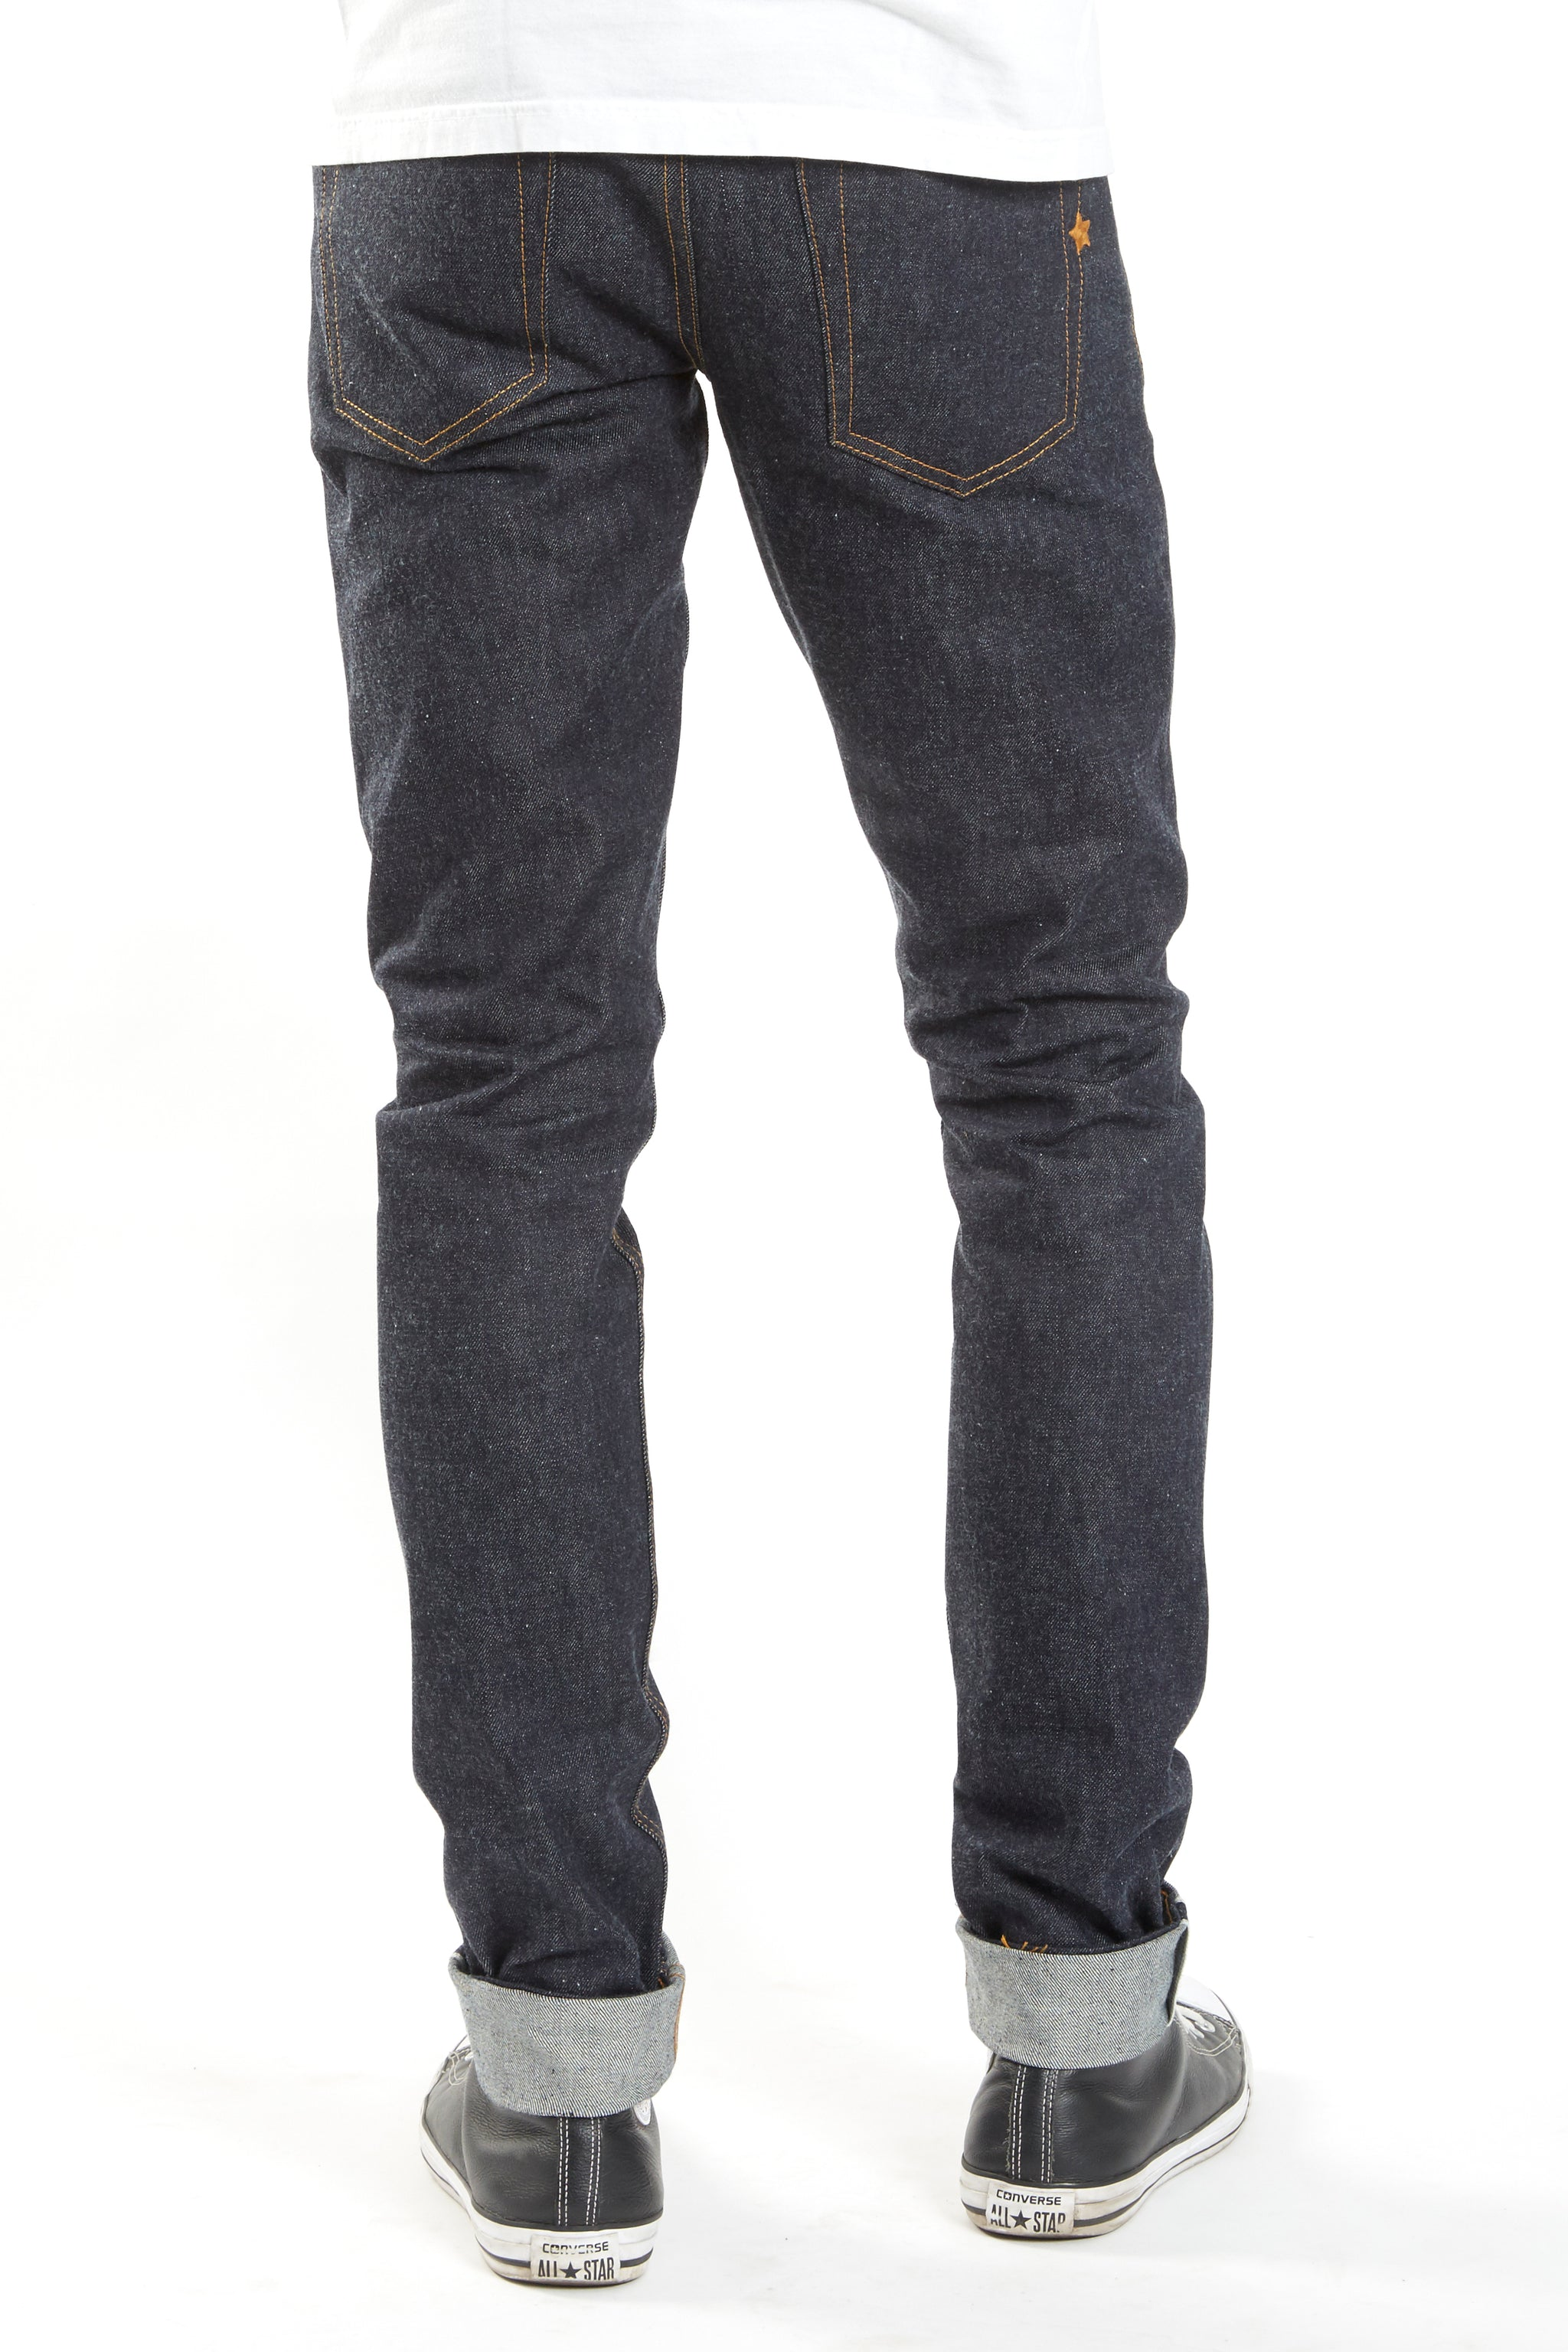 The Regular Taper 12oz 'Woodsman' Cone Mills Selvage Denim